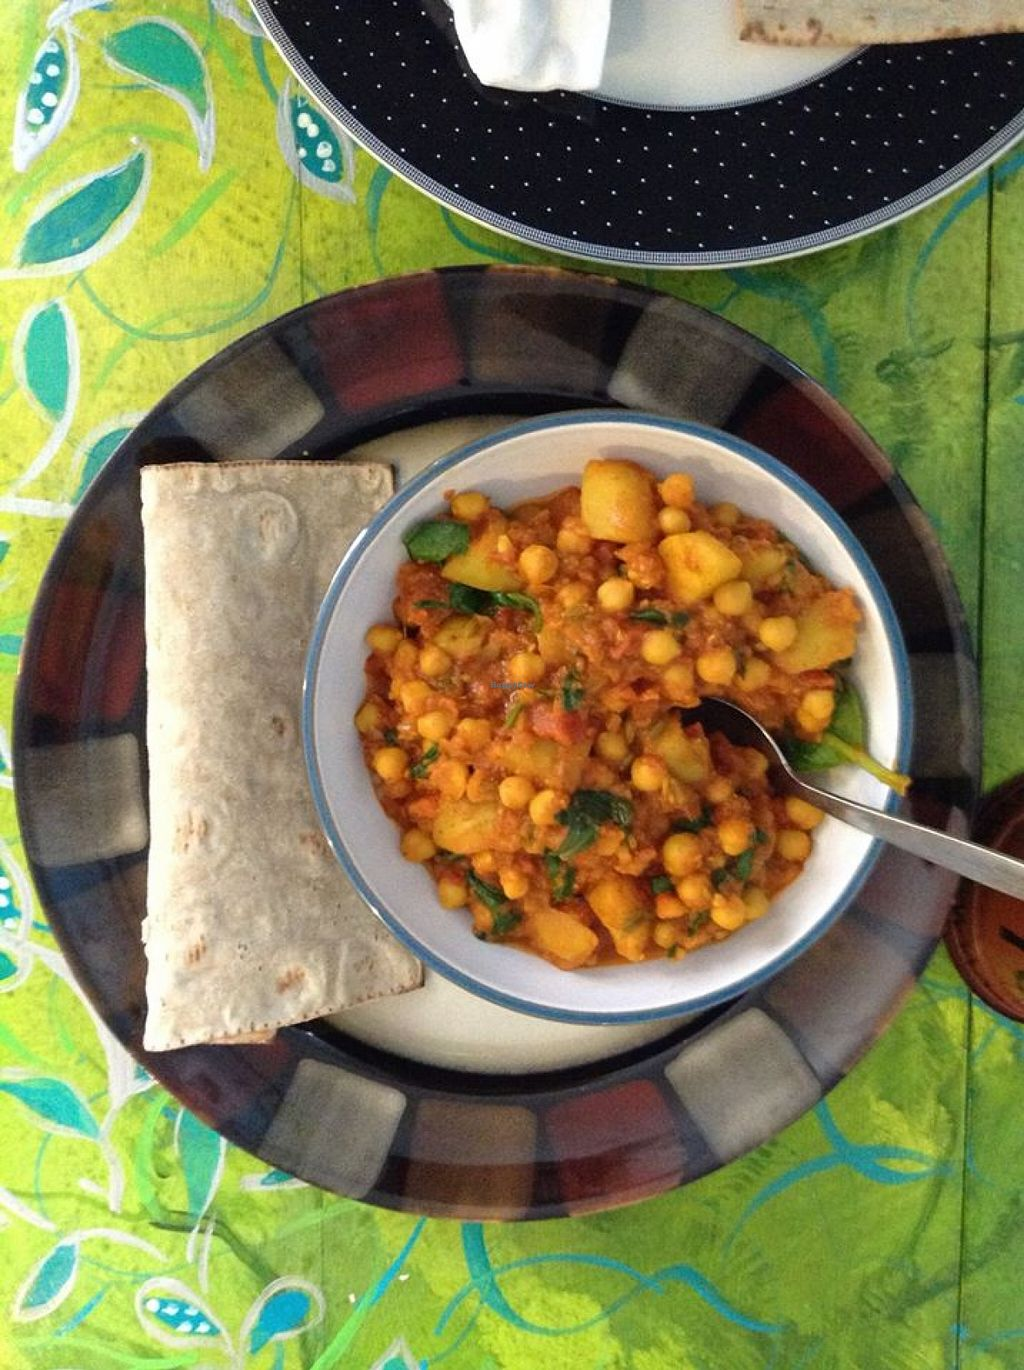 """Photo of Mudlarks Garden Cafe  by <a href=""""/members/profile/marylily2"""">marylily2</a> <br/>Spinach and chickpea curry with a gluten free vegan wrap.  <br/> January 29, 2016  - <a href='/contact/abuse/image/52289/134119'>Report</a>"""